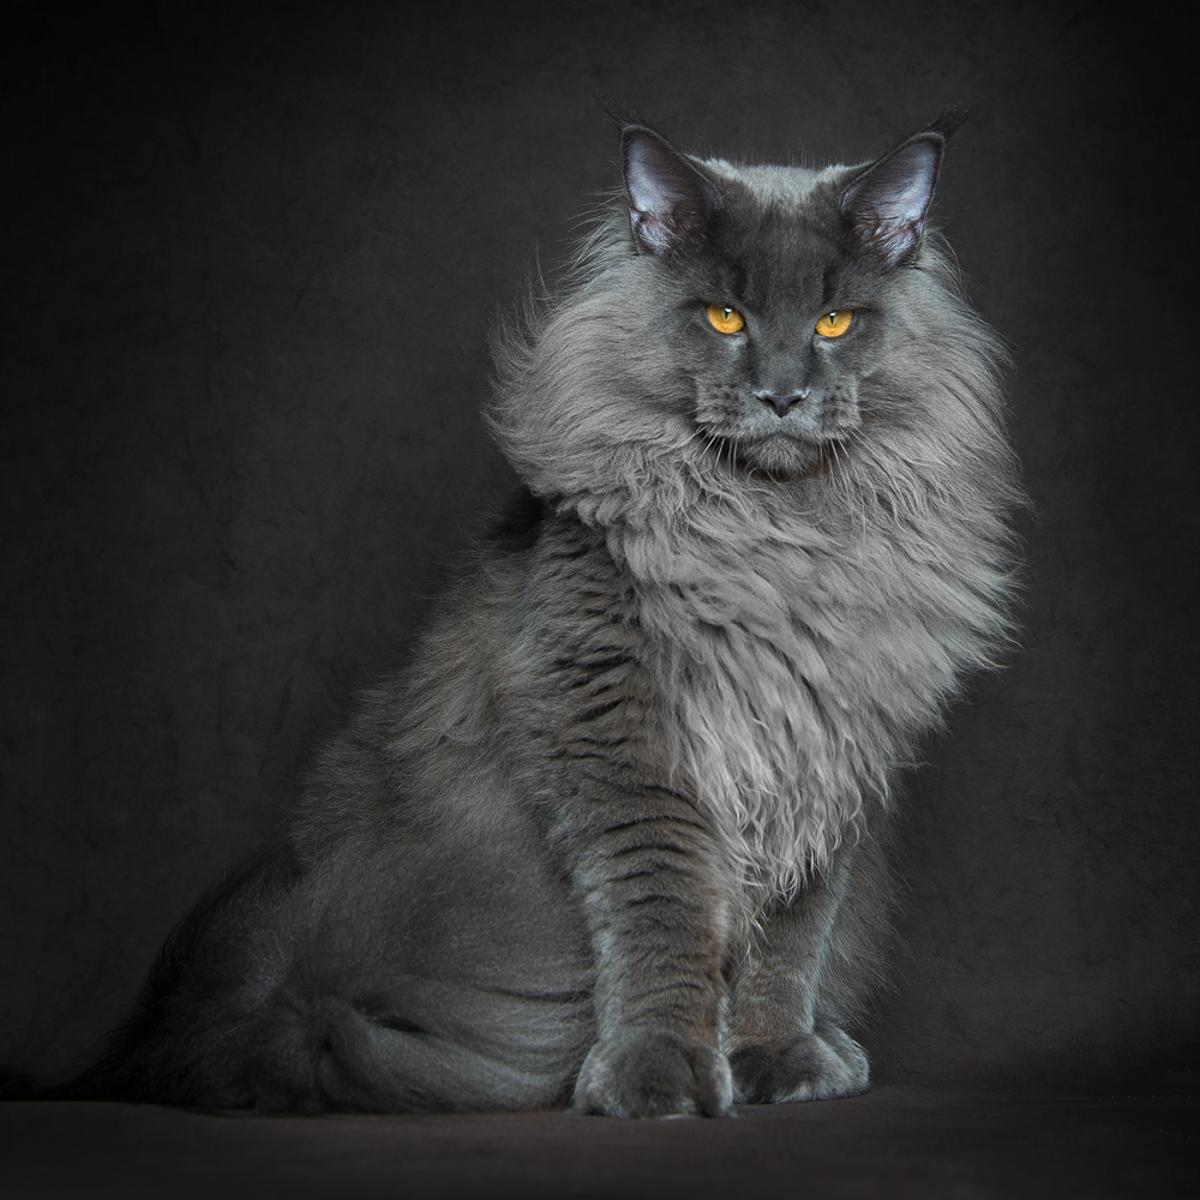 Winner of 3rd place in the Professional Wildlife/Animals category: Robert Sijka - Blue Lion. A majestic young Maine Coon cat male